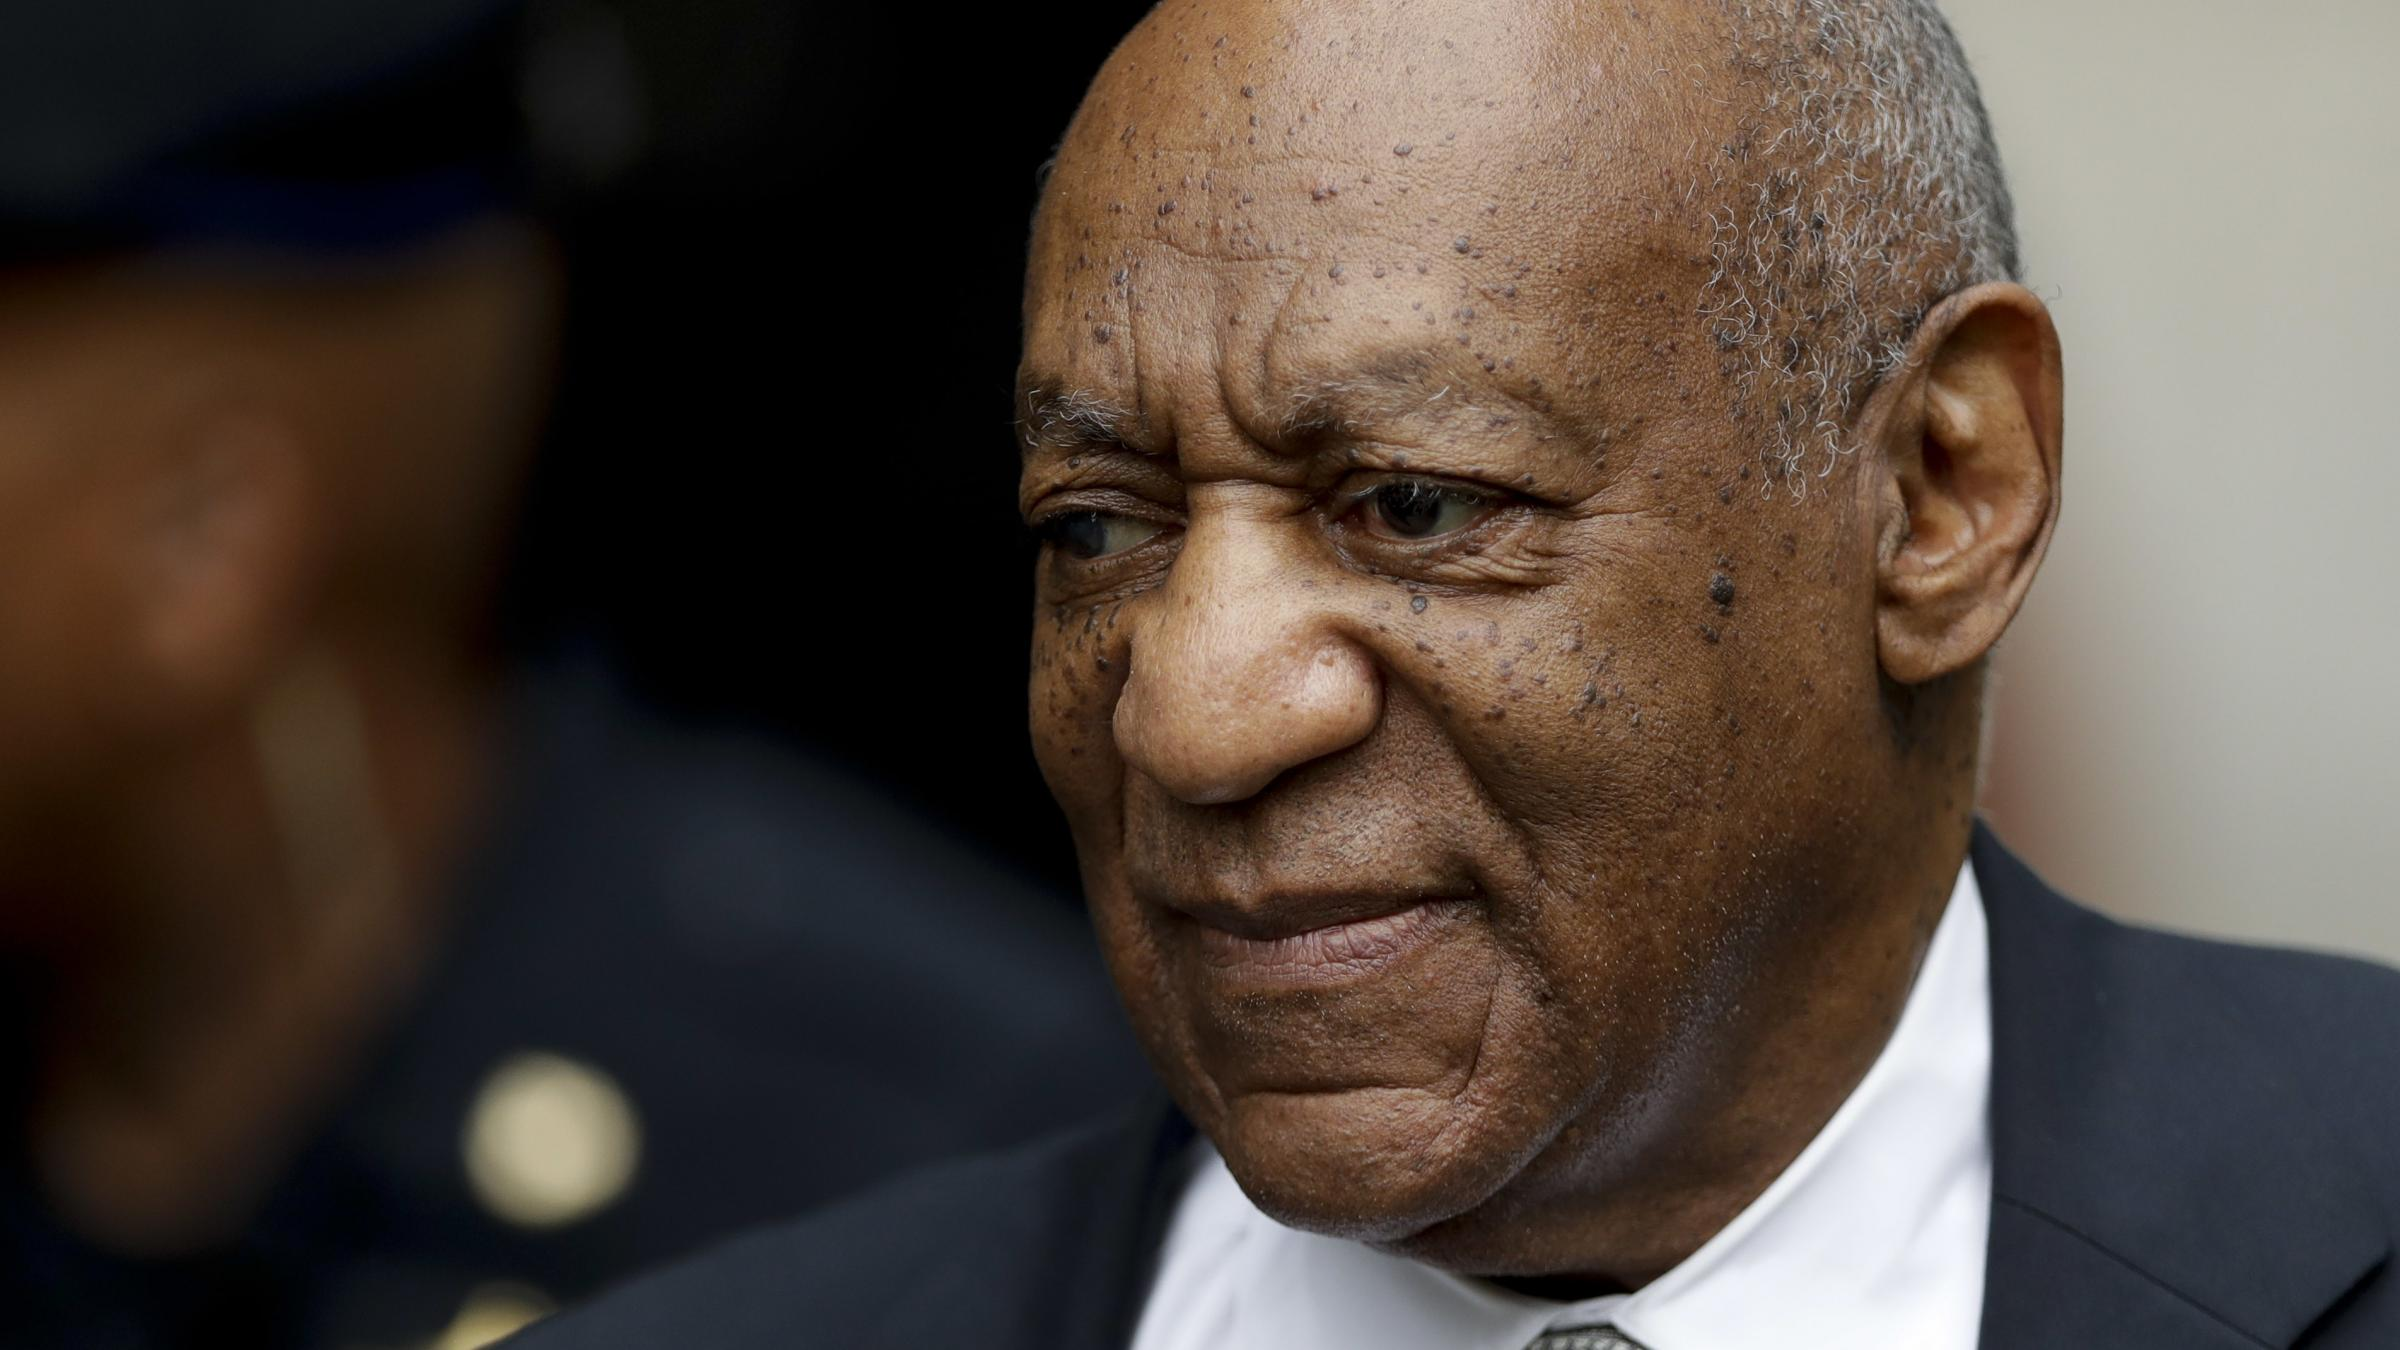 Bill Cosby sexual assault trial ends in mistrial